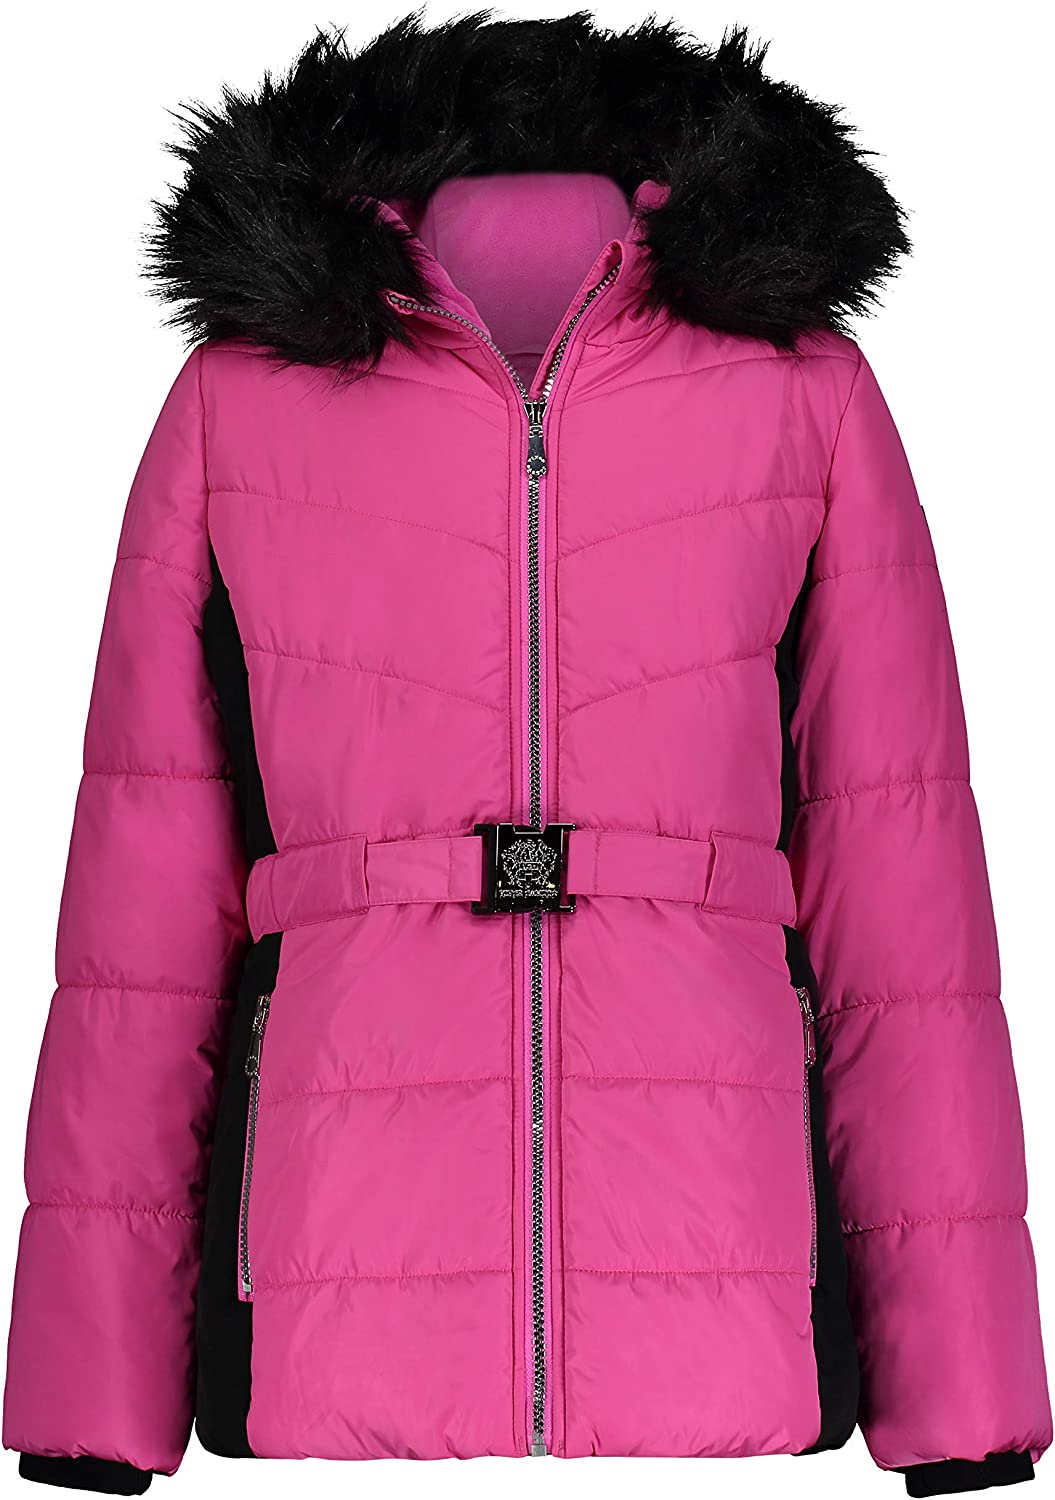 Vince Camuto Girls' Warm Hooded Coat Jacket with Belt